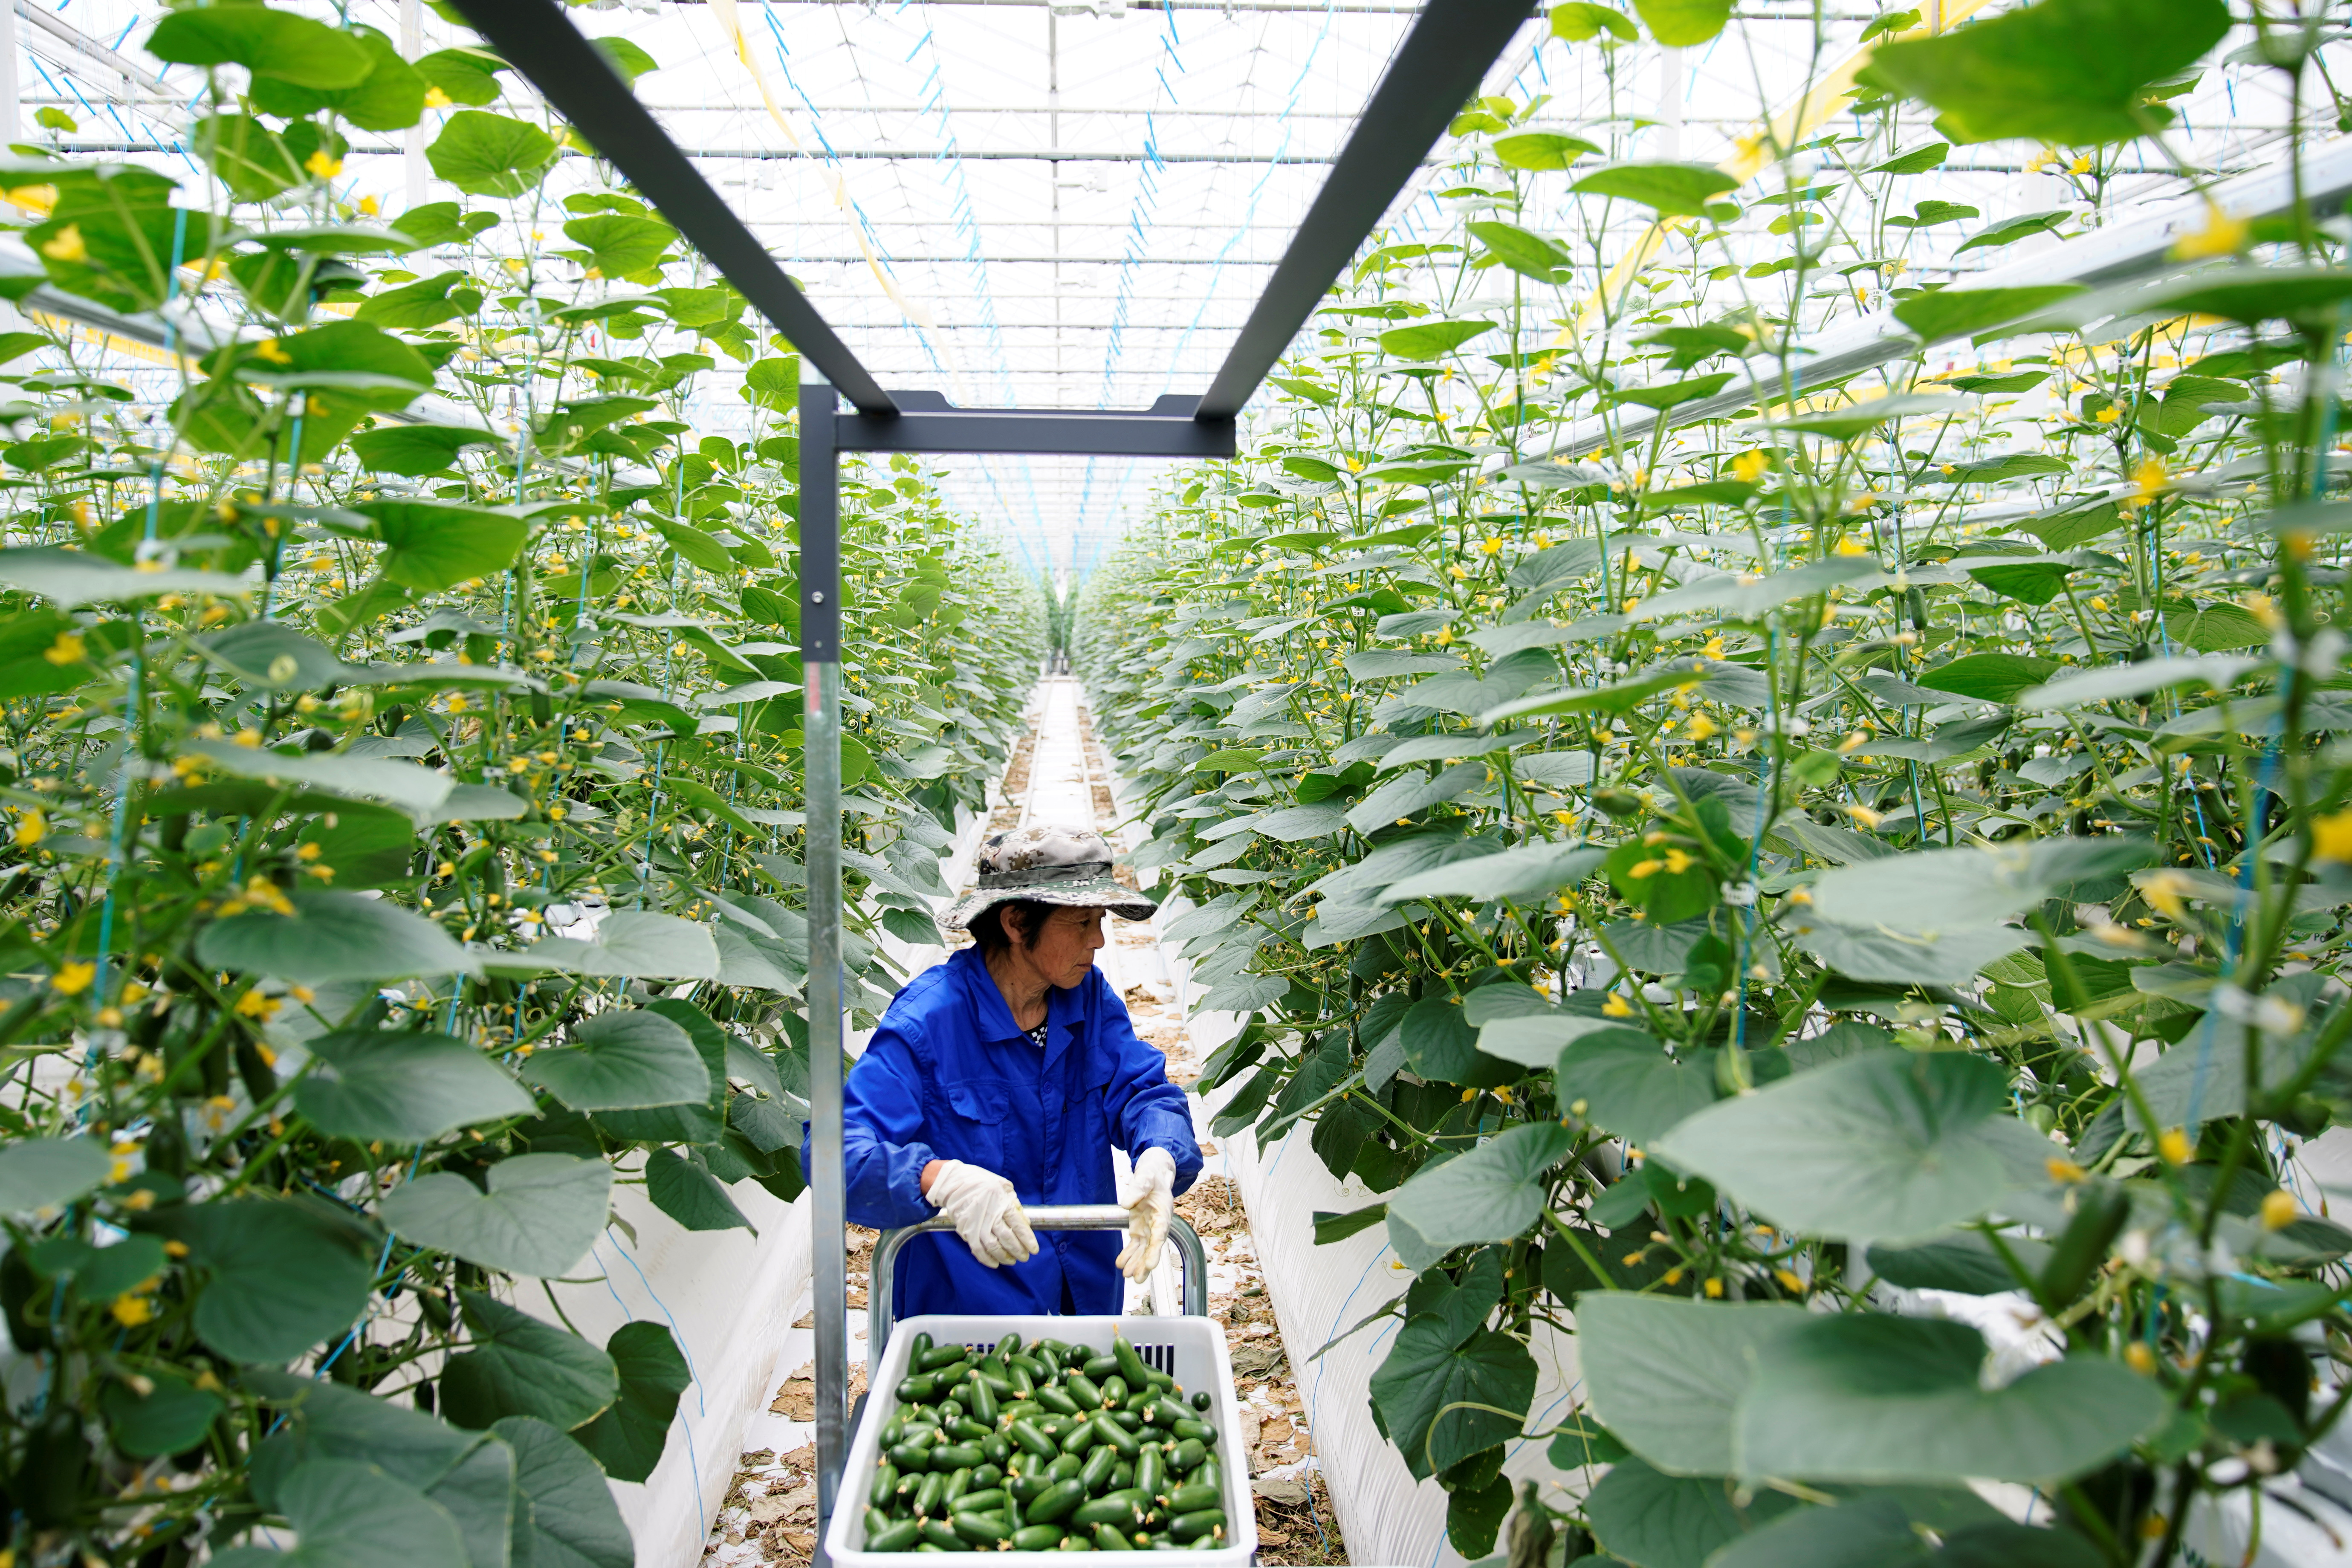 A farmer gathers cucumbers at Hengda greenhouse in Shanghai, China May 25, 2021. REUTERS/Aly Song